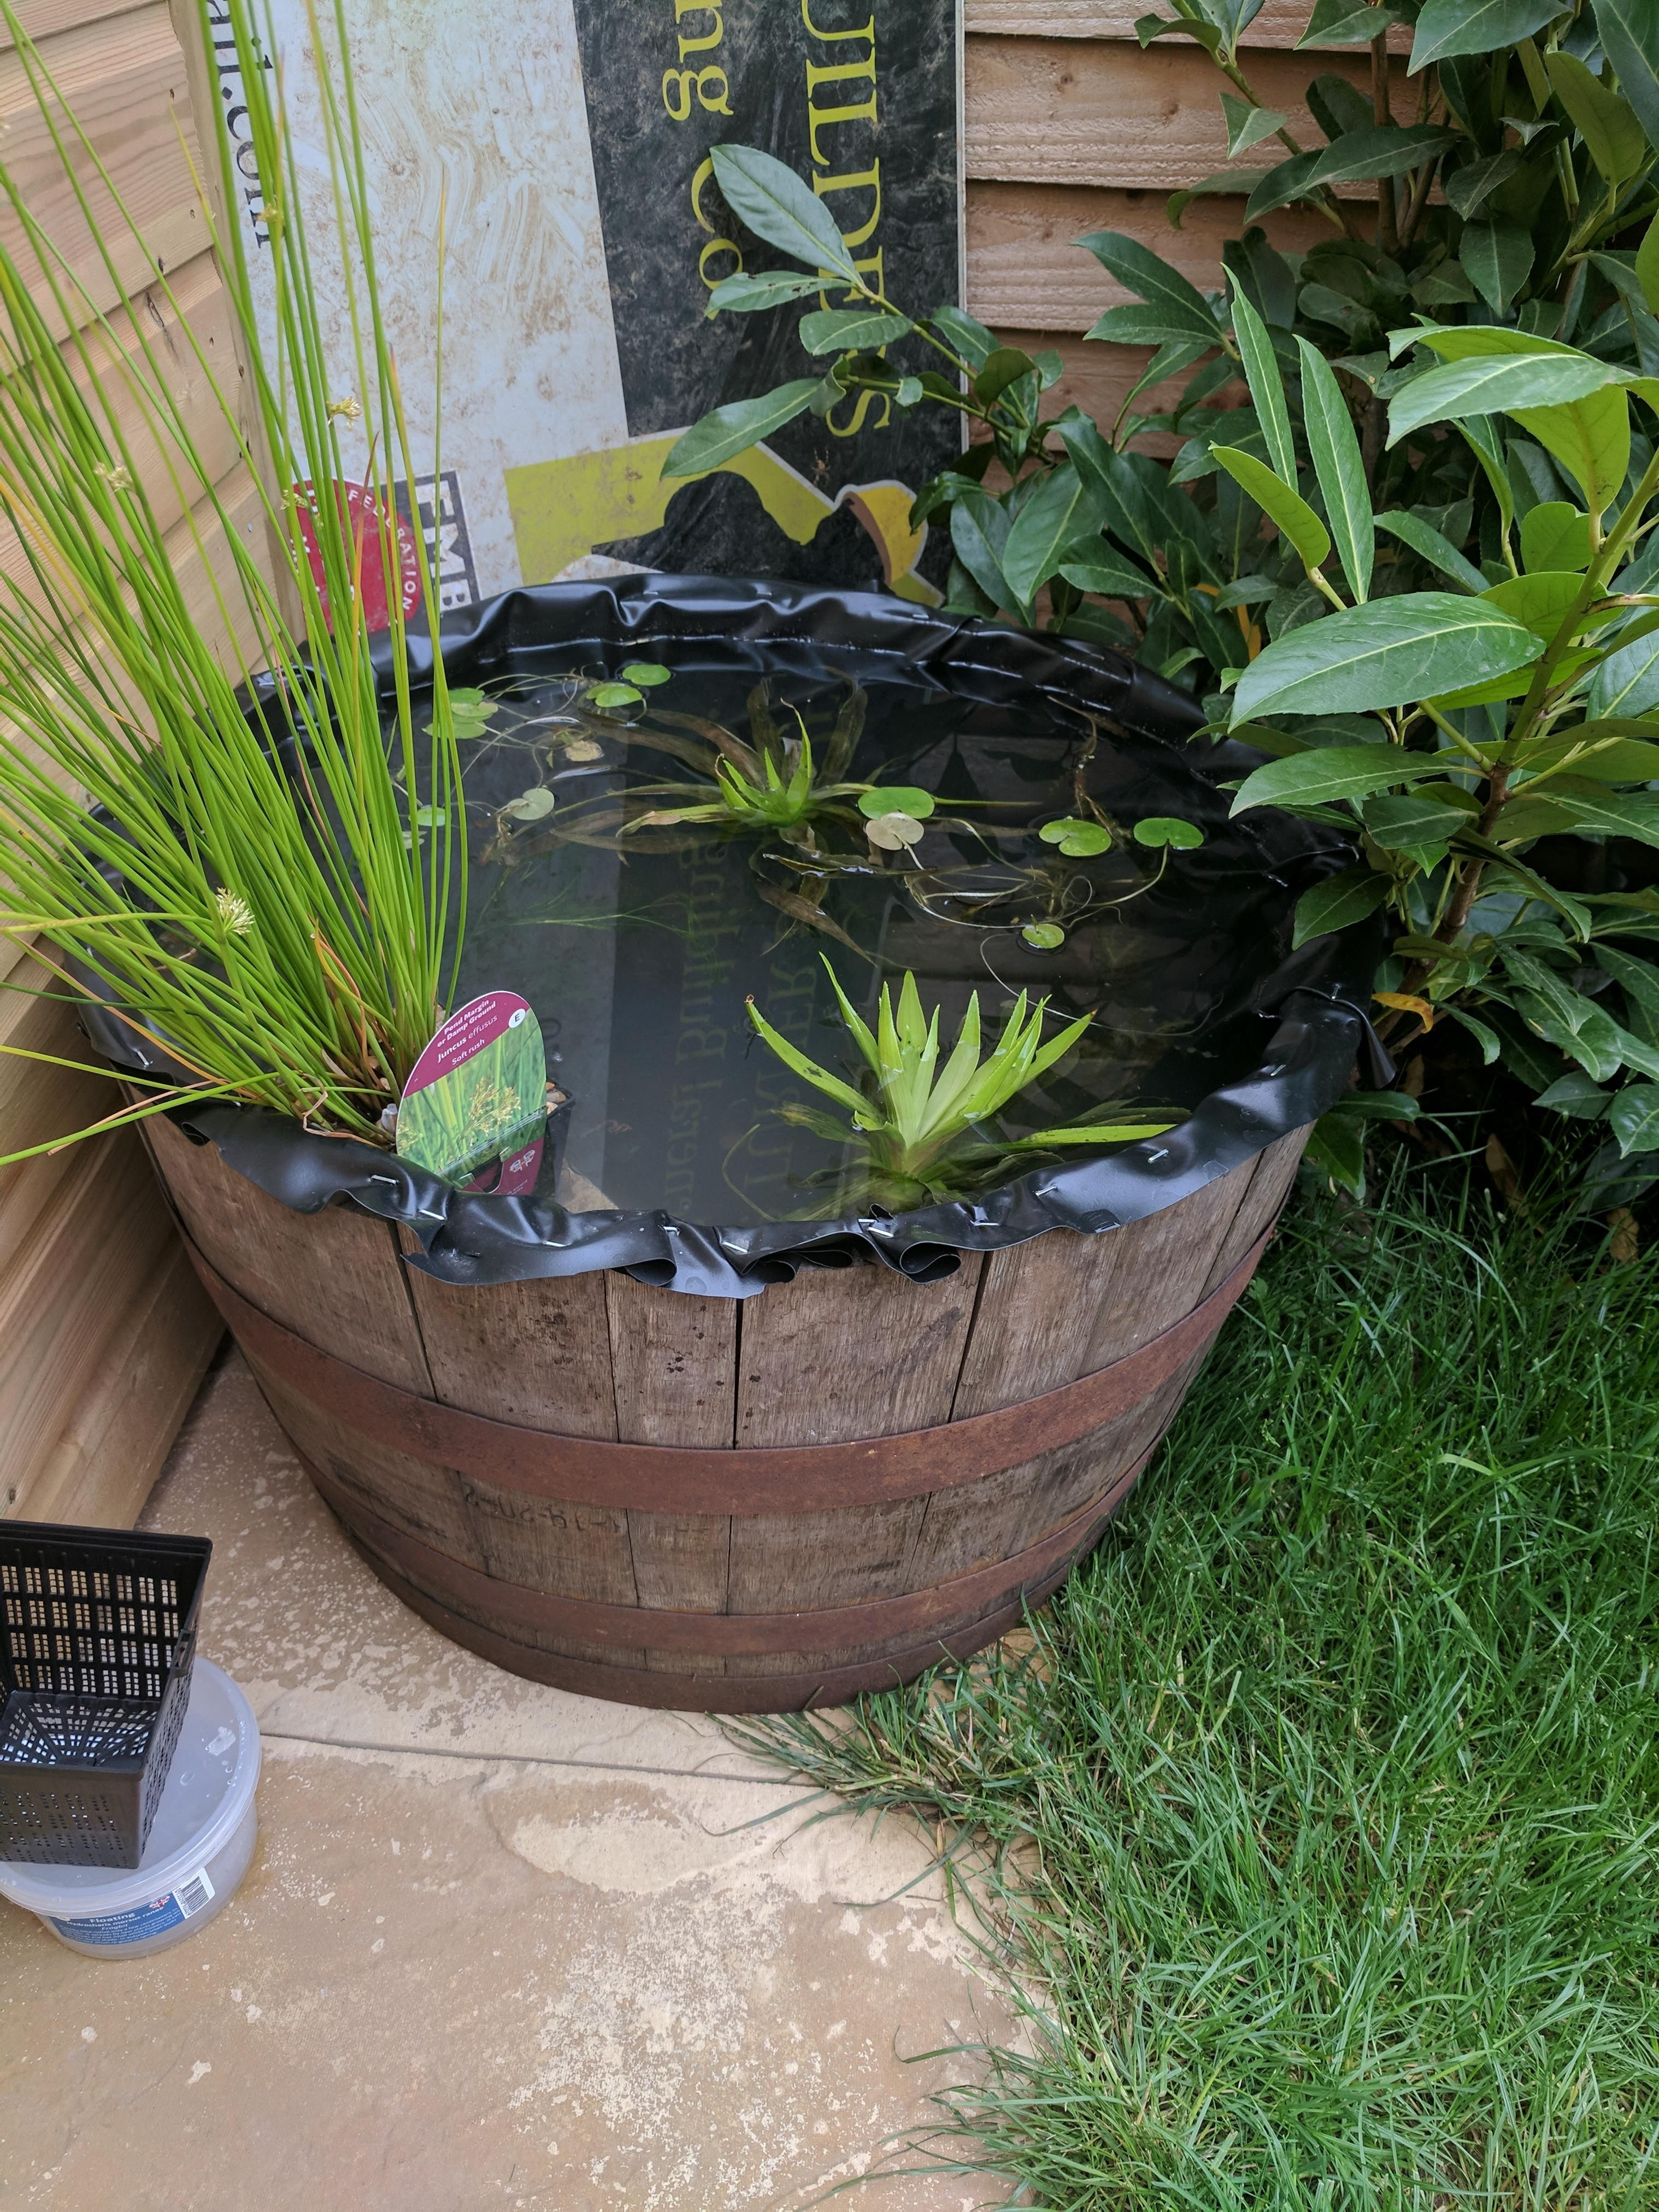 Making small raised pond not sure how to give access to ... on Raised Garden Ponds Ideas id=90786